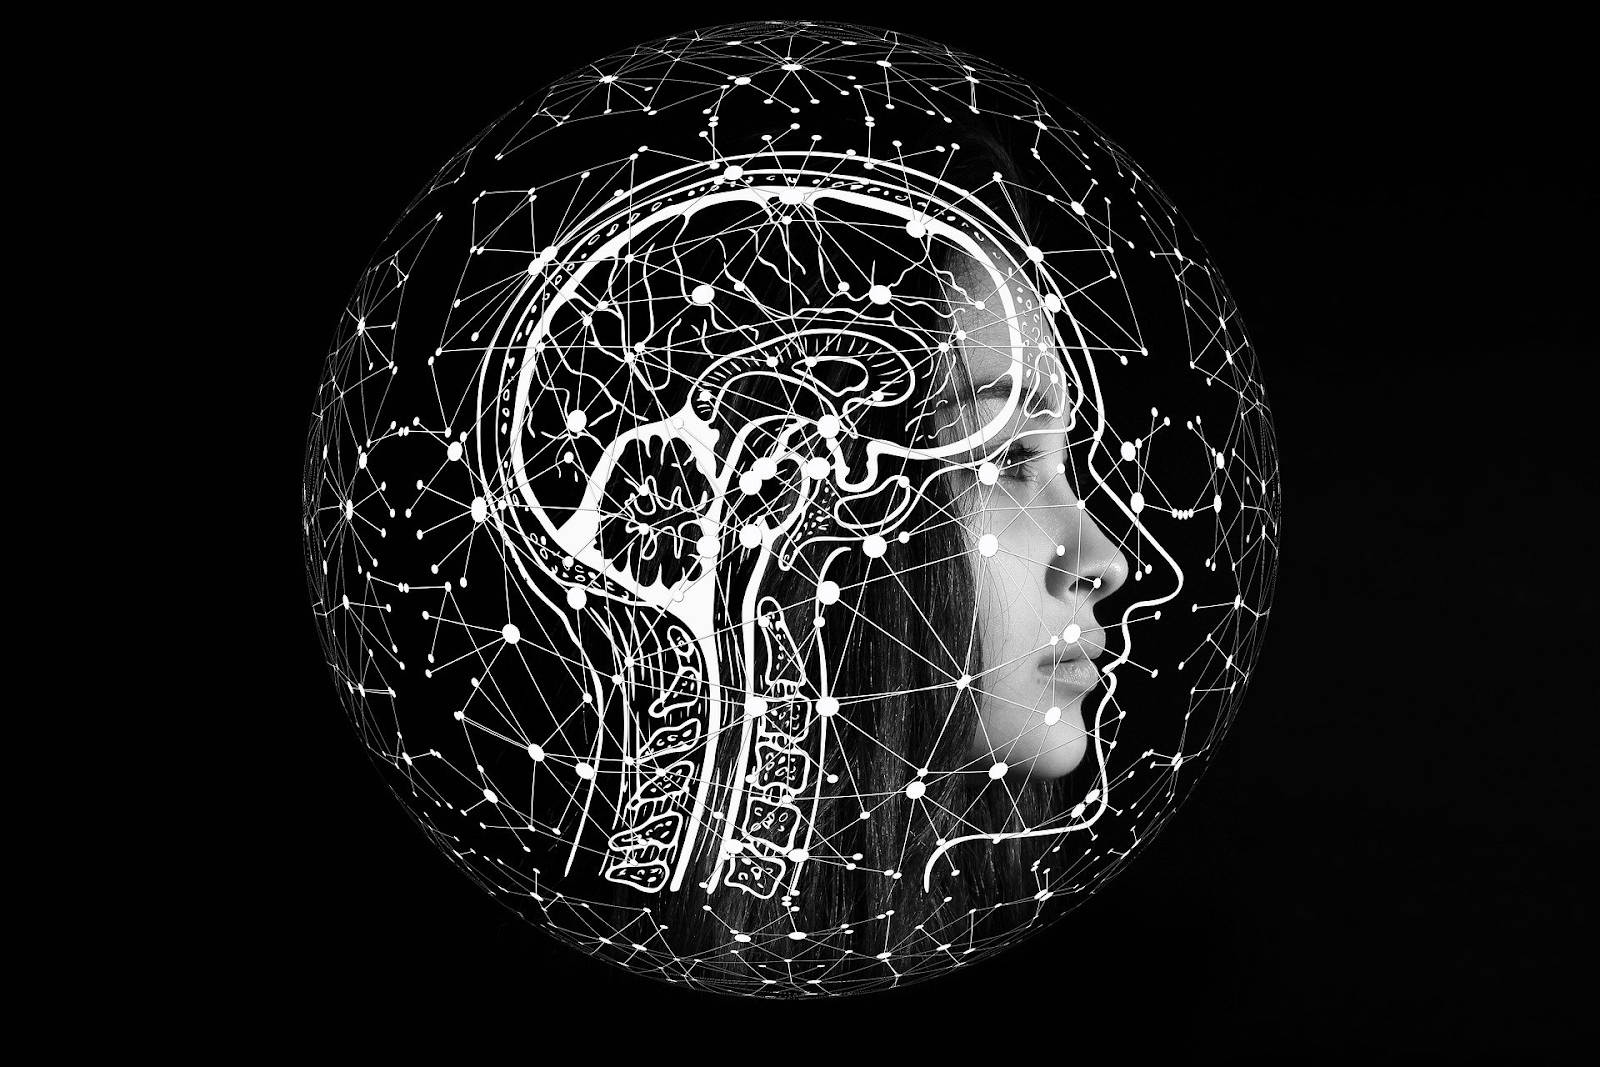 Consciousness, brain black and white picture